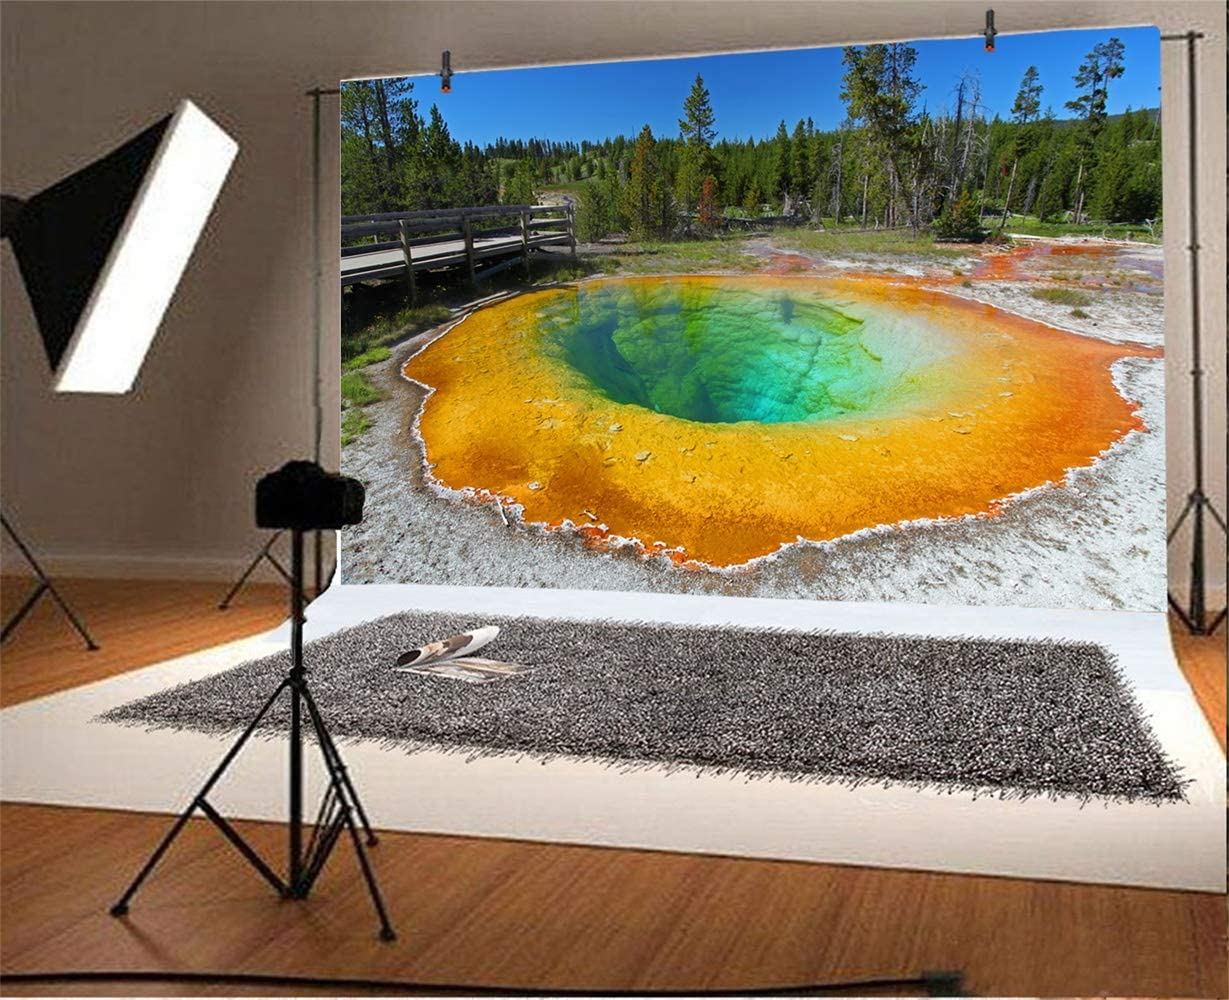 Laeacco 7x5ft Yellowstone National Park Scenic Background for Photography America Wyoming Geothermal Geyser Hot Spring Backdrop Indoor Decoration Landscape Wallpaper Holiday Vacation